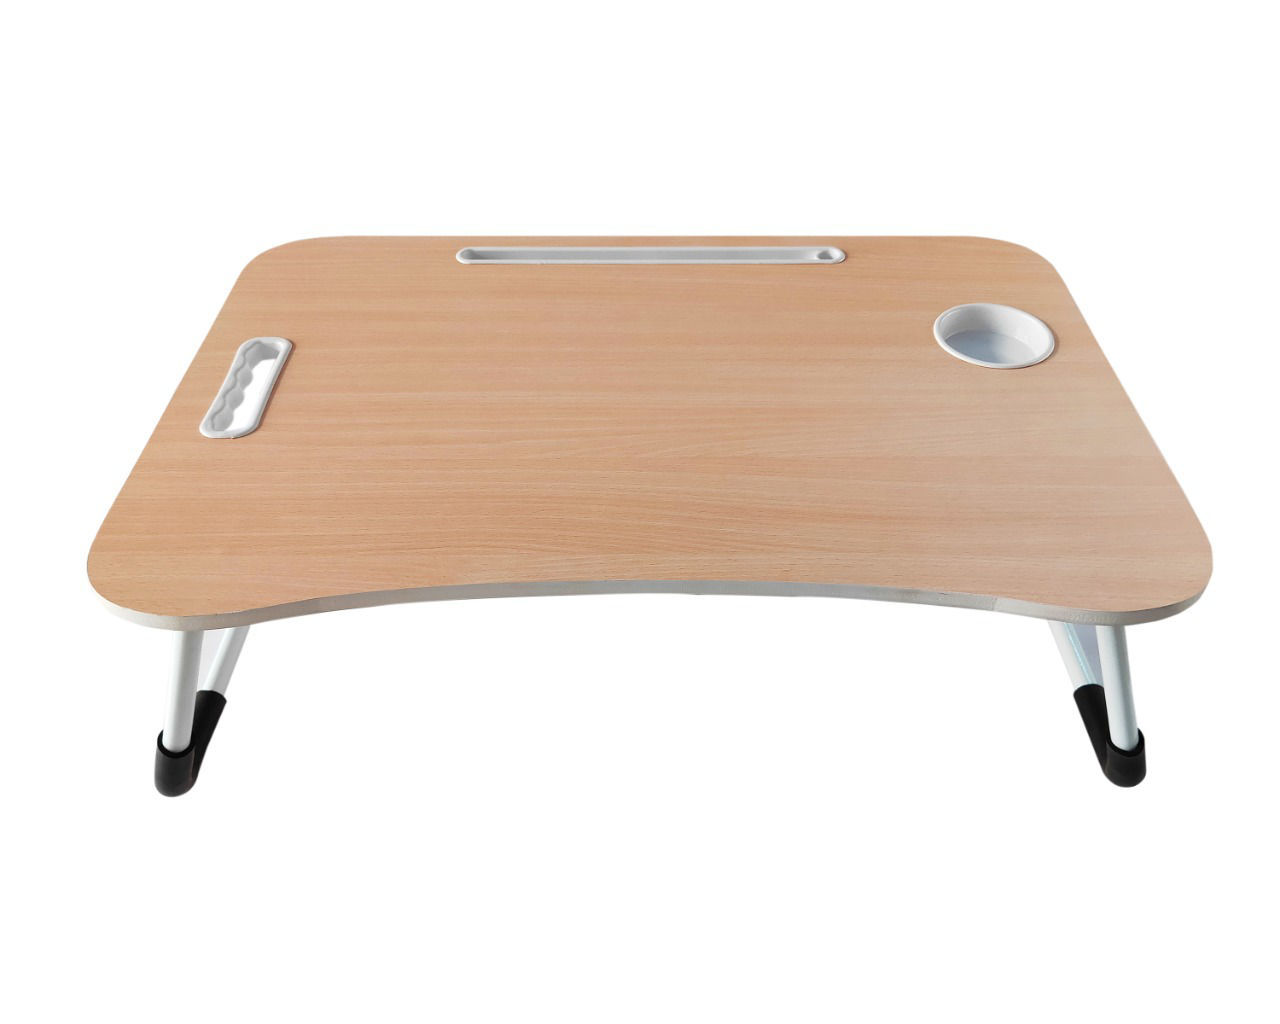 Wooden Bed Table -Cream